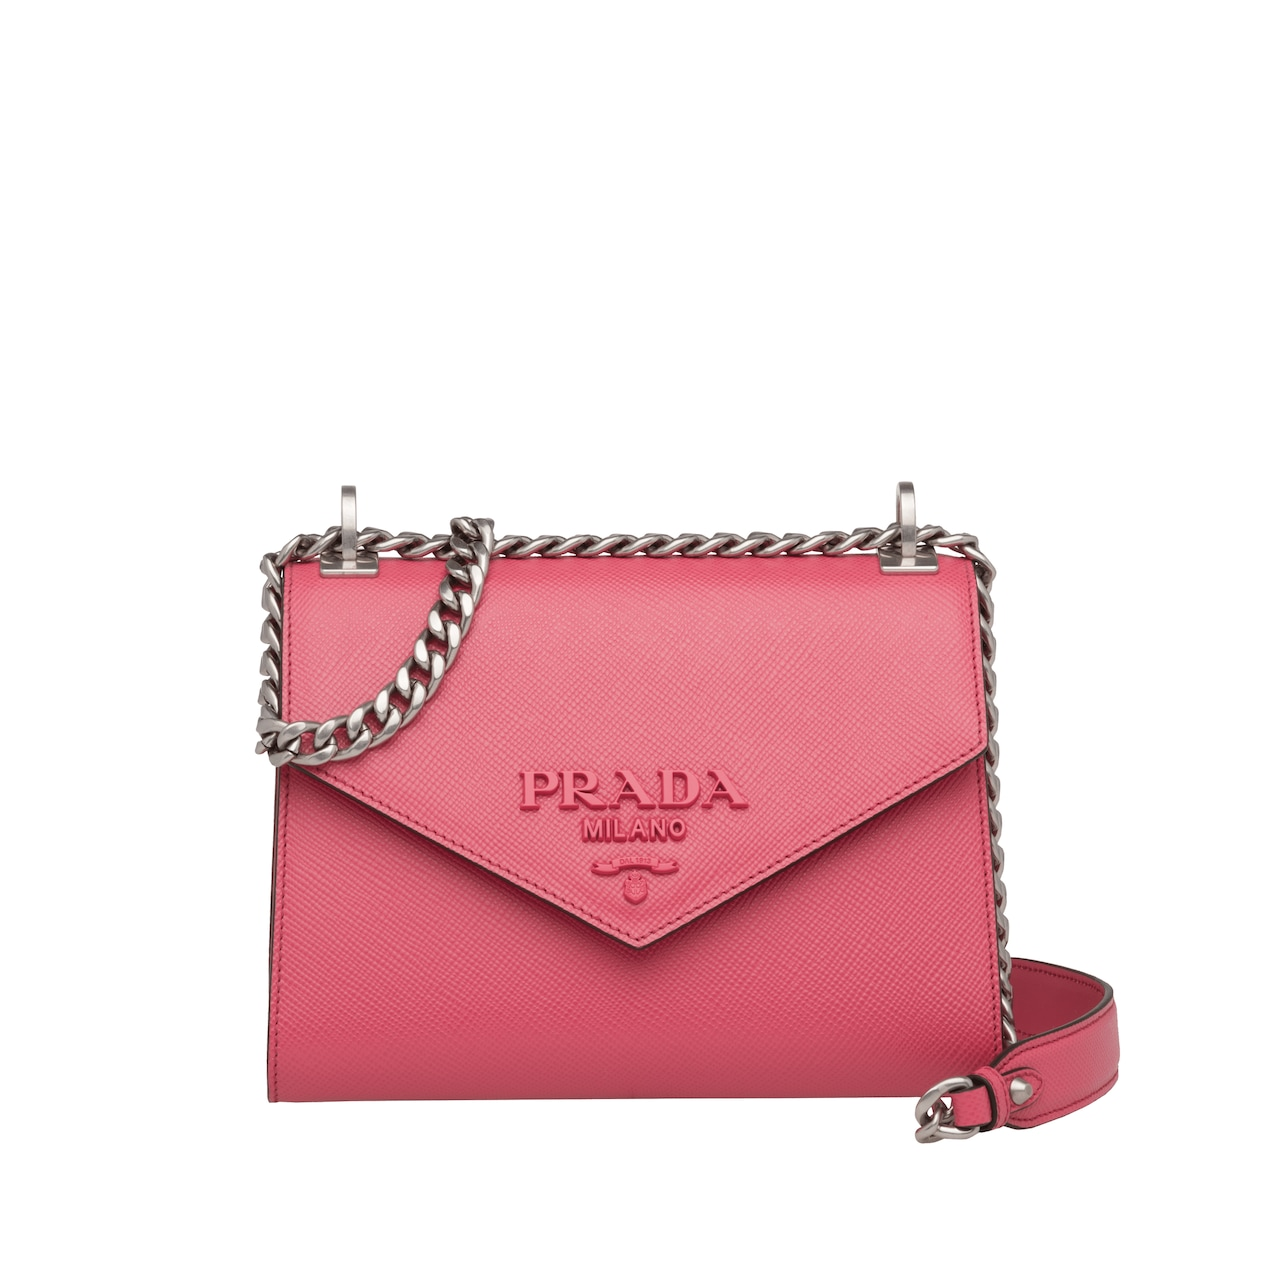 Prada Monochrome Saffiano leather bag